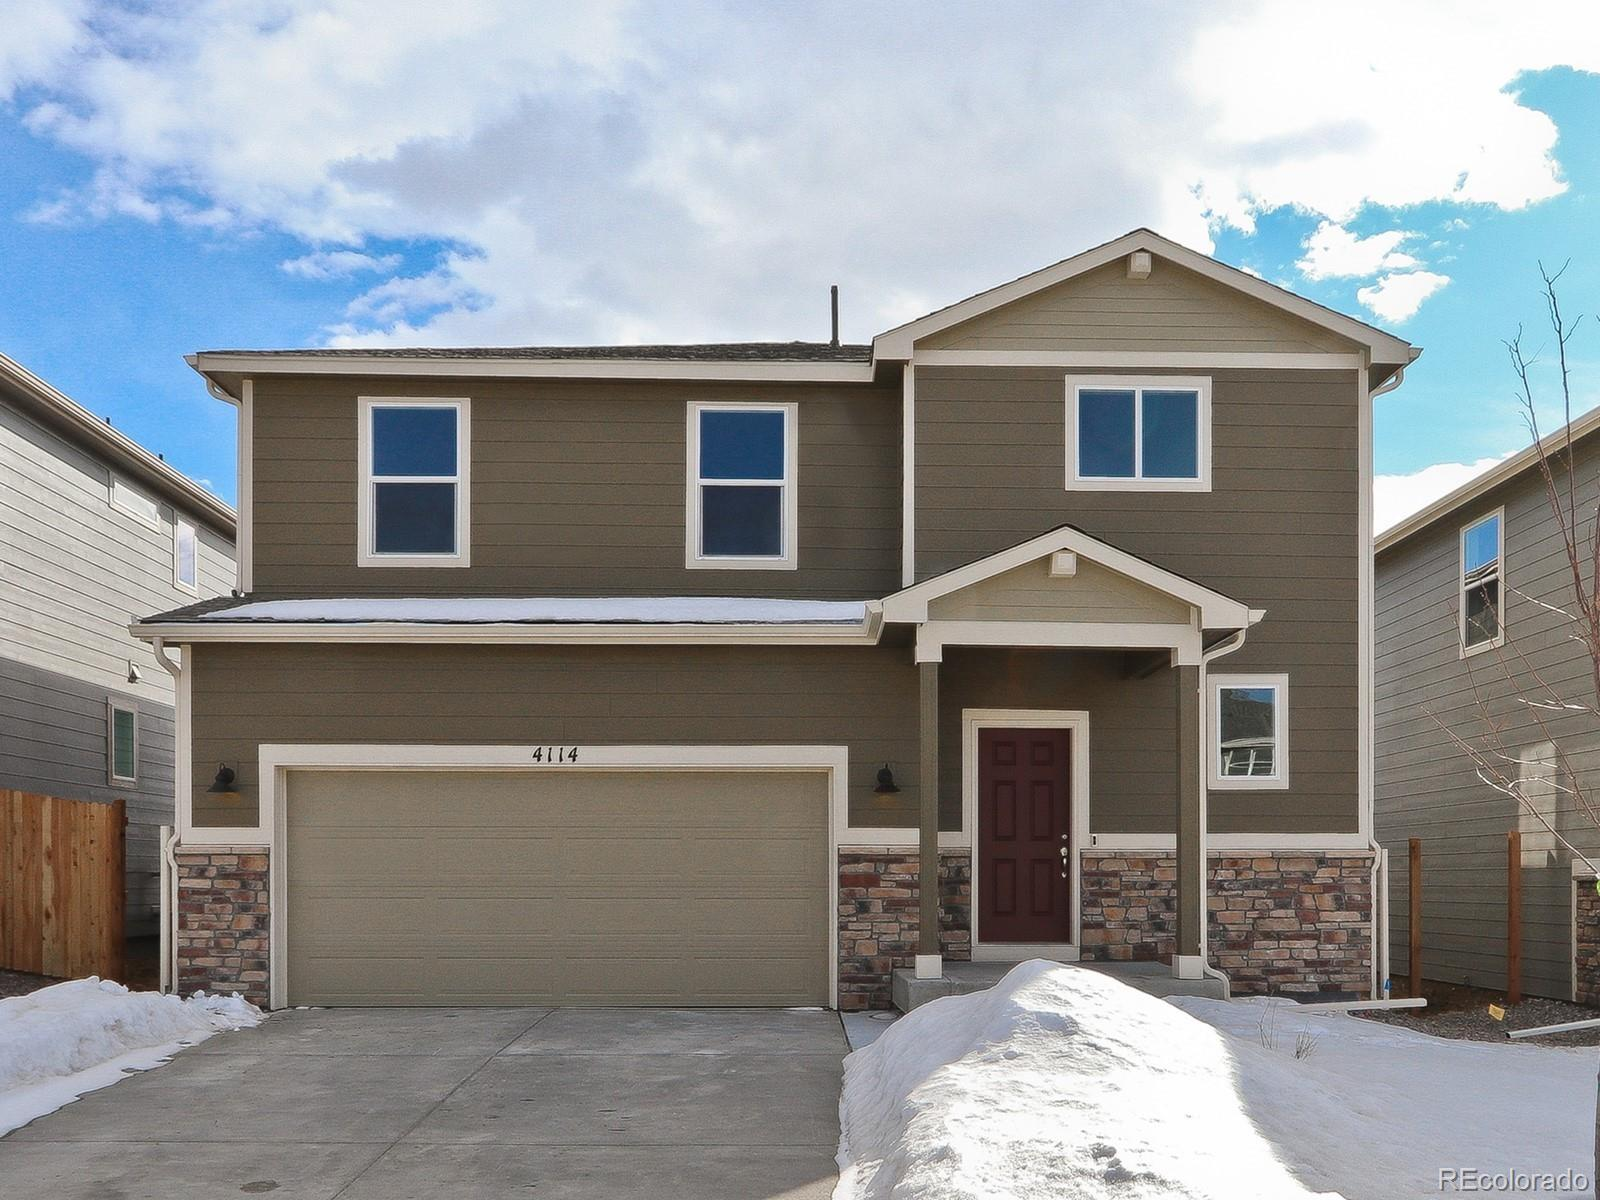 MLS# 6884287 - 1 - 4114 S Nepal Circle, Aurora, CO 80013